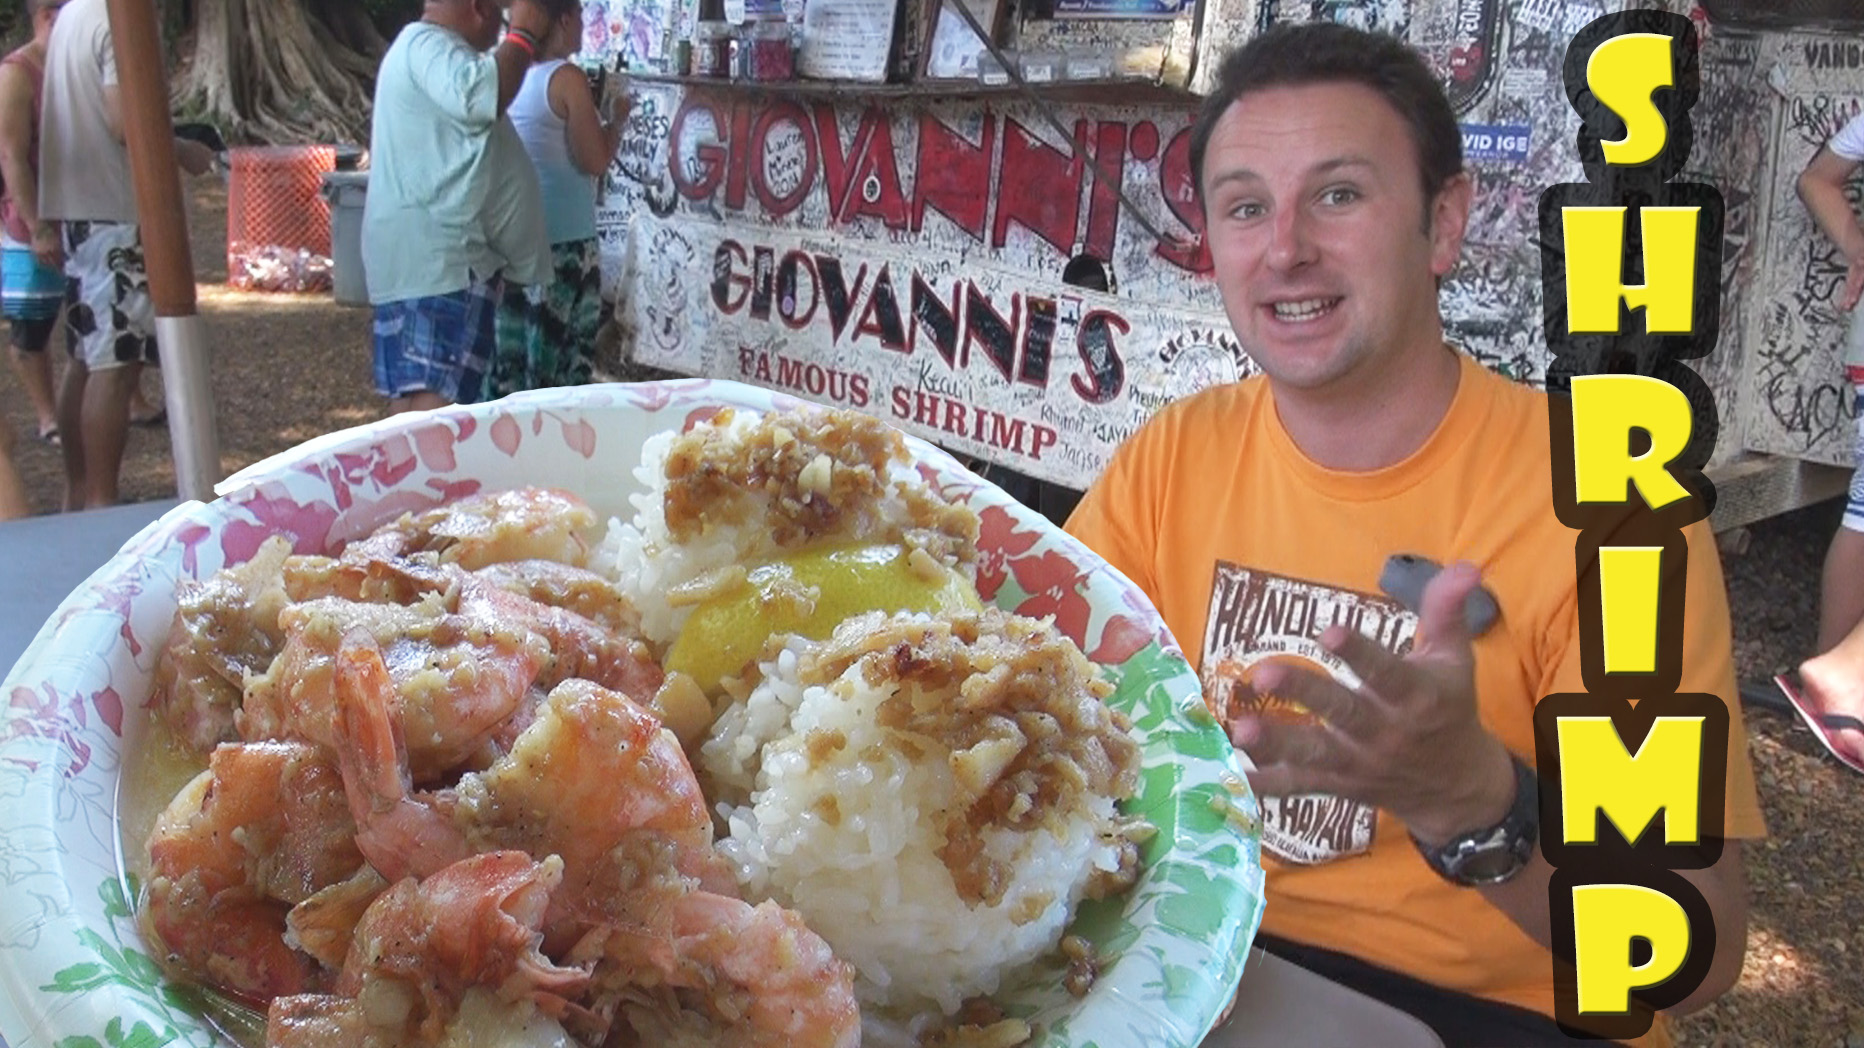 Giovanni's Shrimp Truck – The Best Shrimp Truck in Hawaii